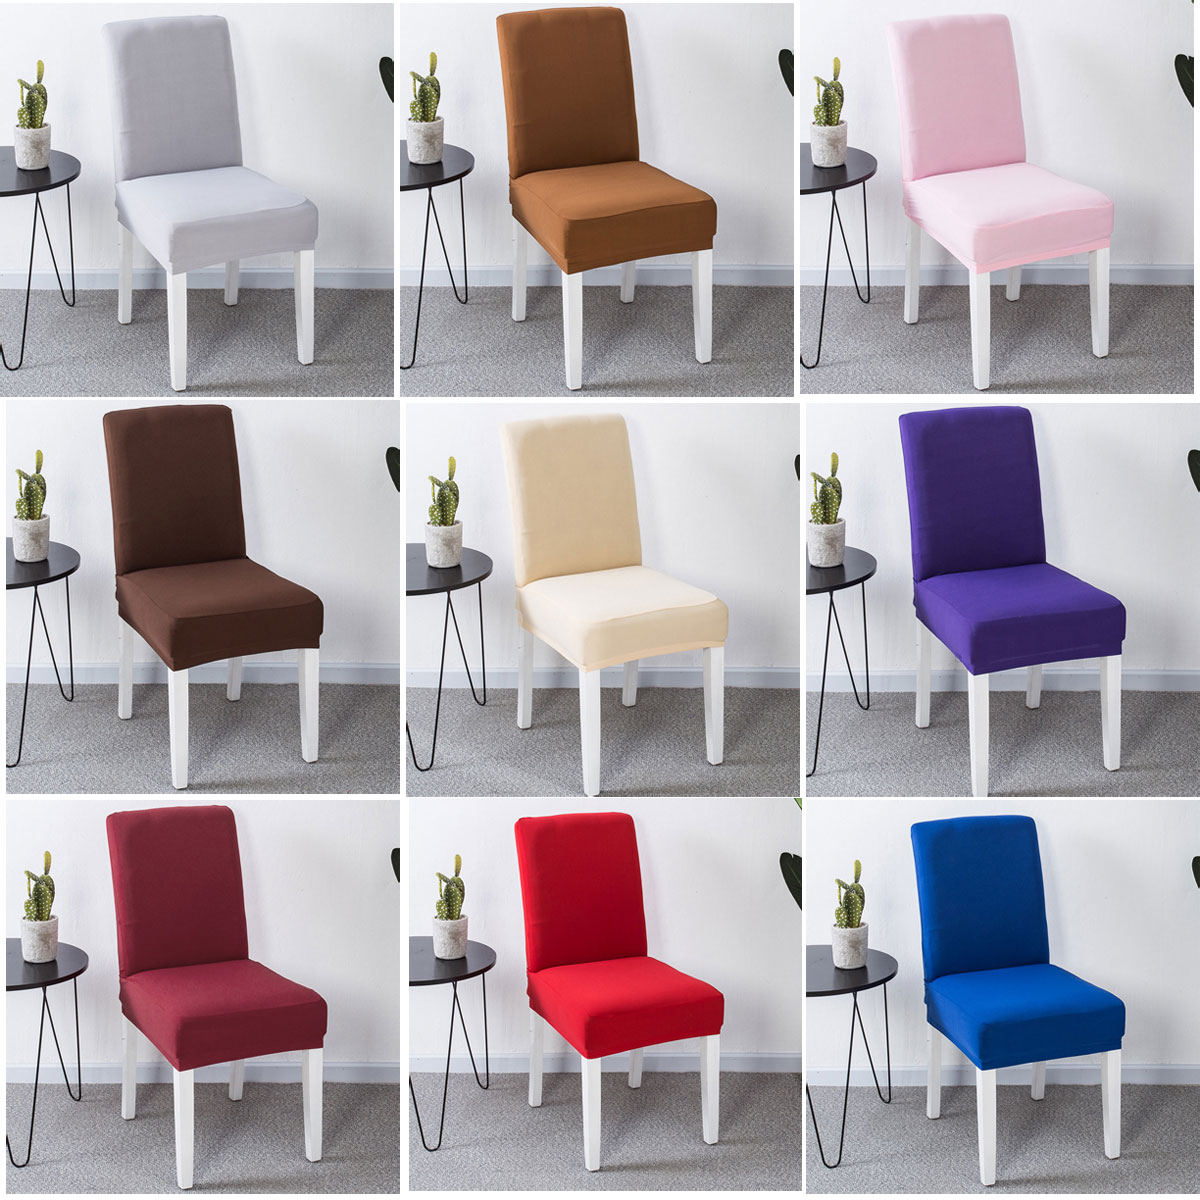 Details about stretch chair cover banquet kitchen protective dustproof covers seat slipcovers